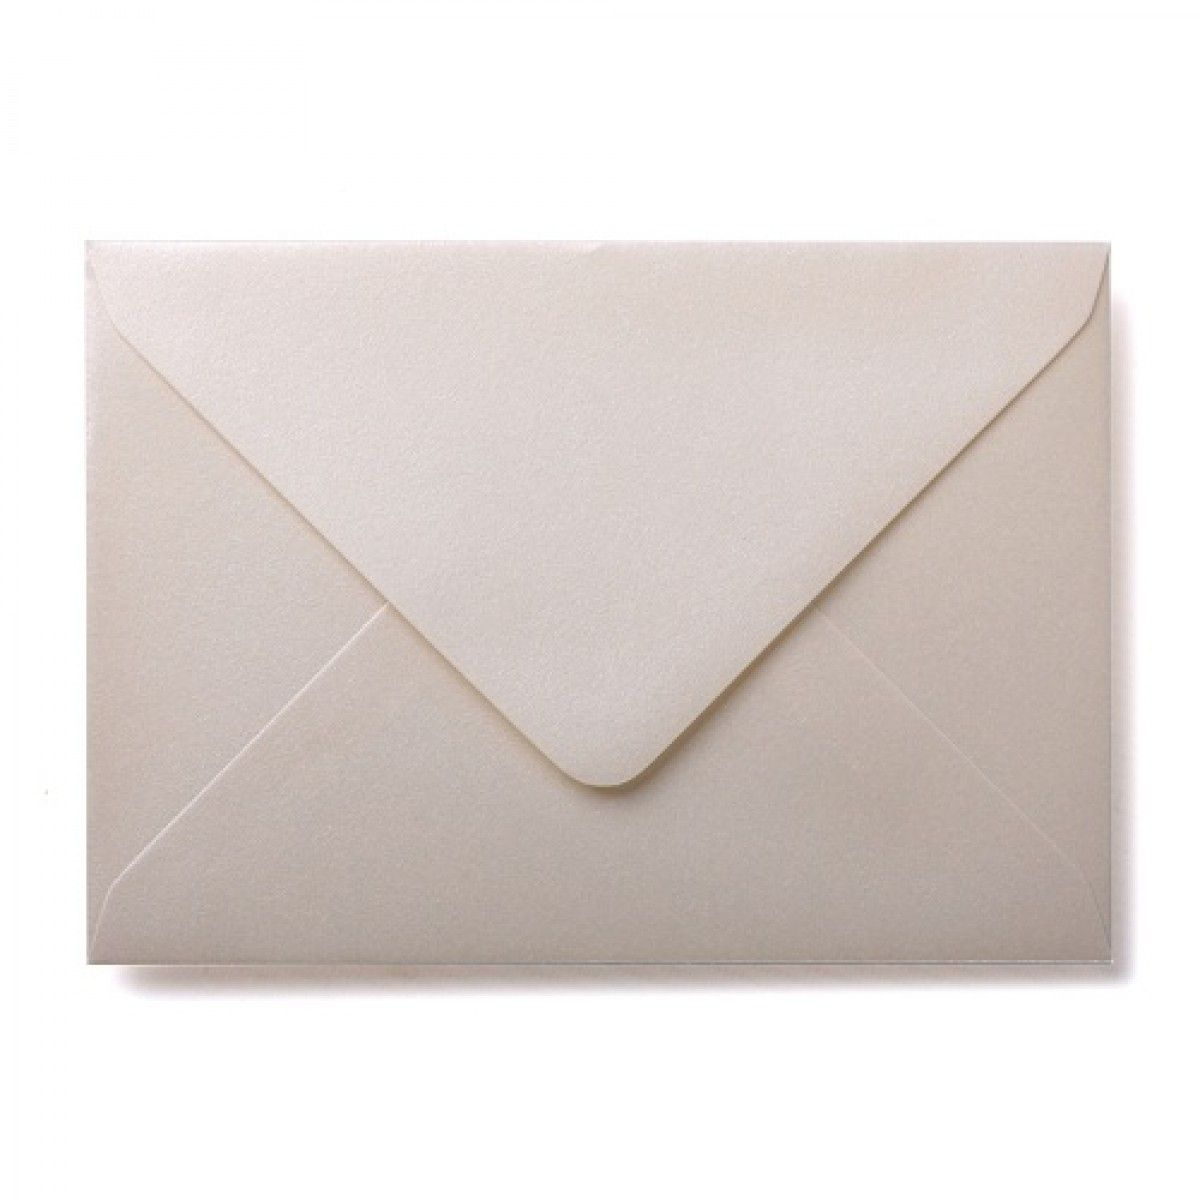 Opal Ivory C6 A6 Pearlescent Wedding Envelopes 120gsm Pack Size 10